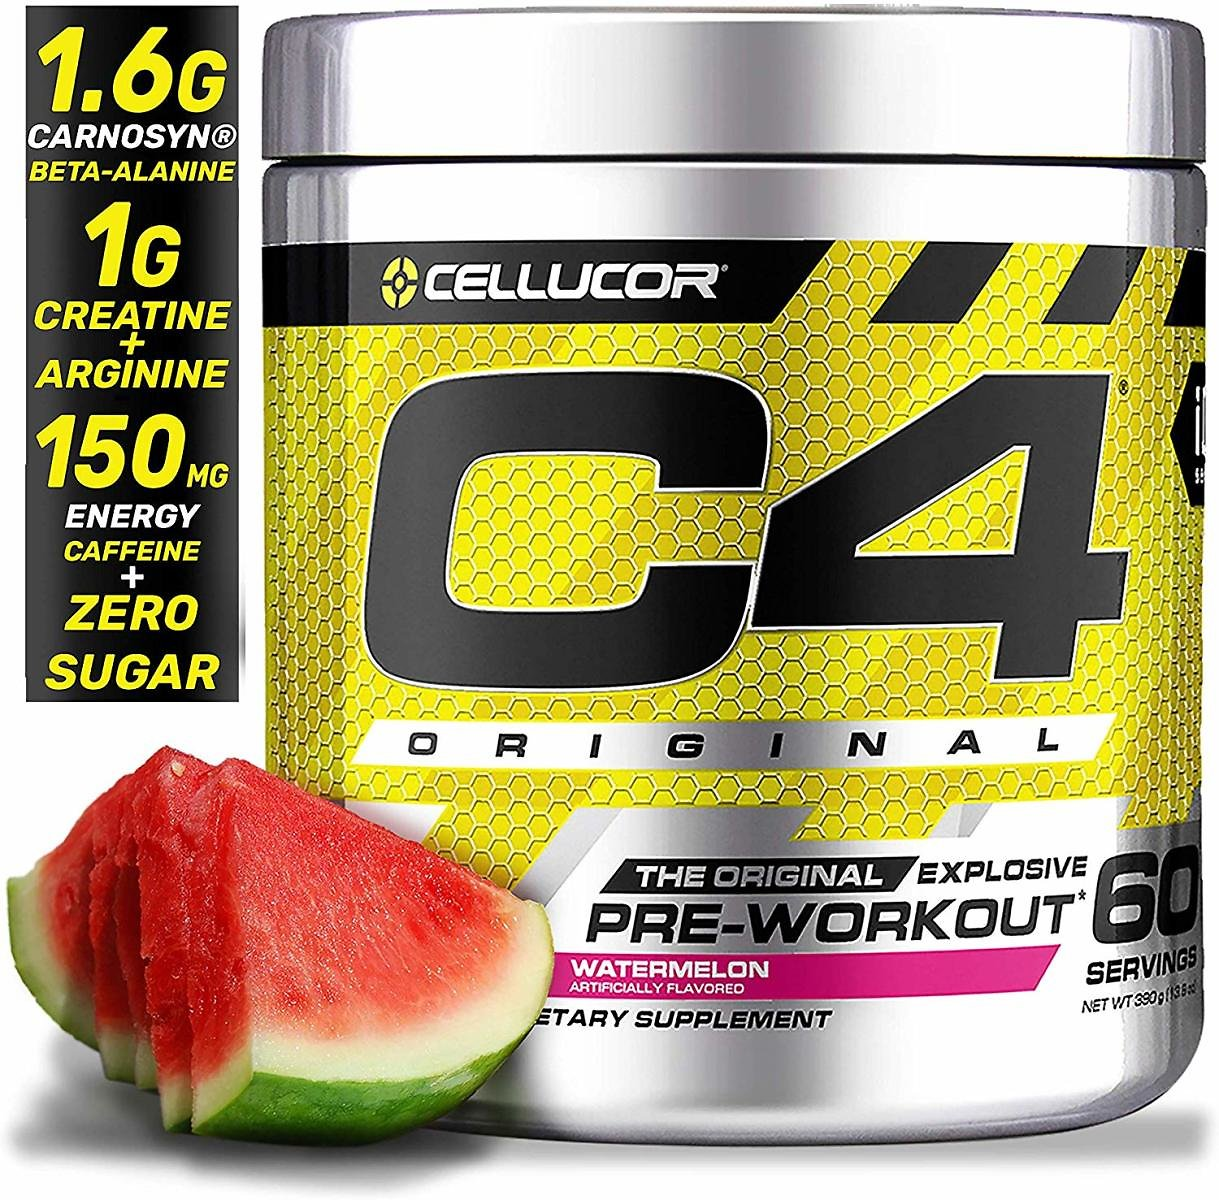 Cellucor C4 Original Pre Workout Powder Energy Drink Supplement For Men & Women, 60 Servings